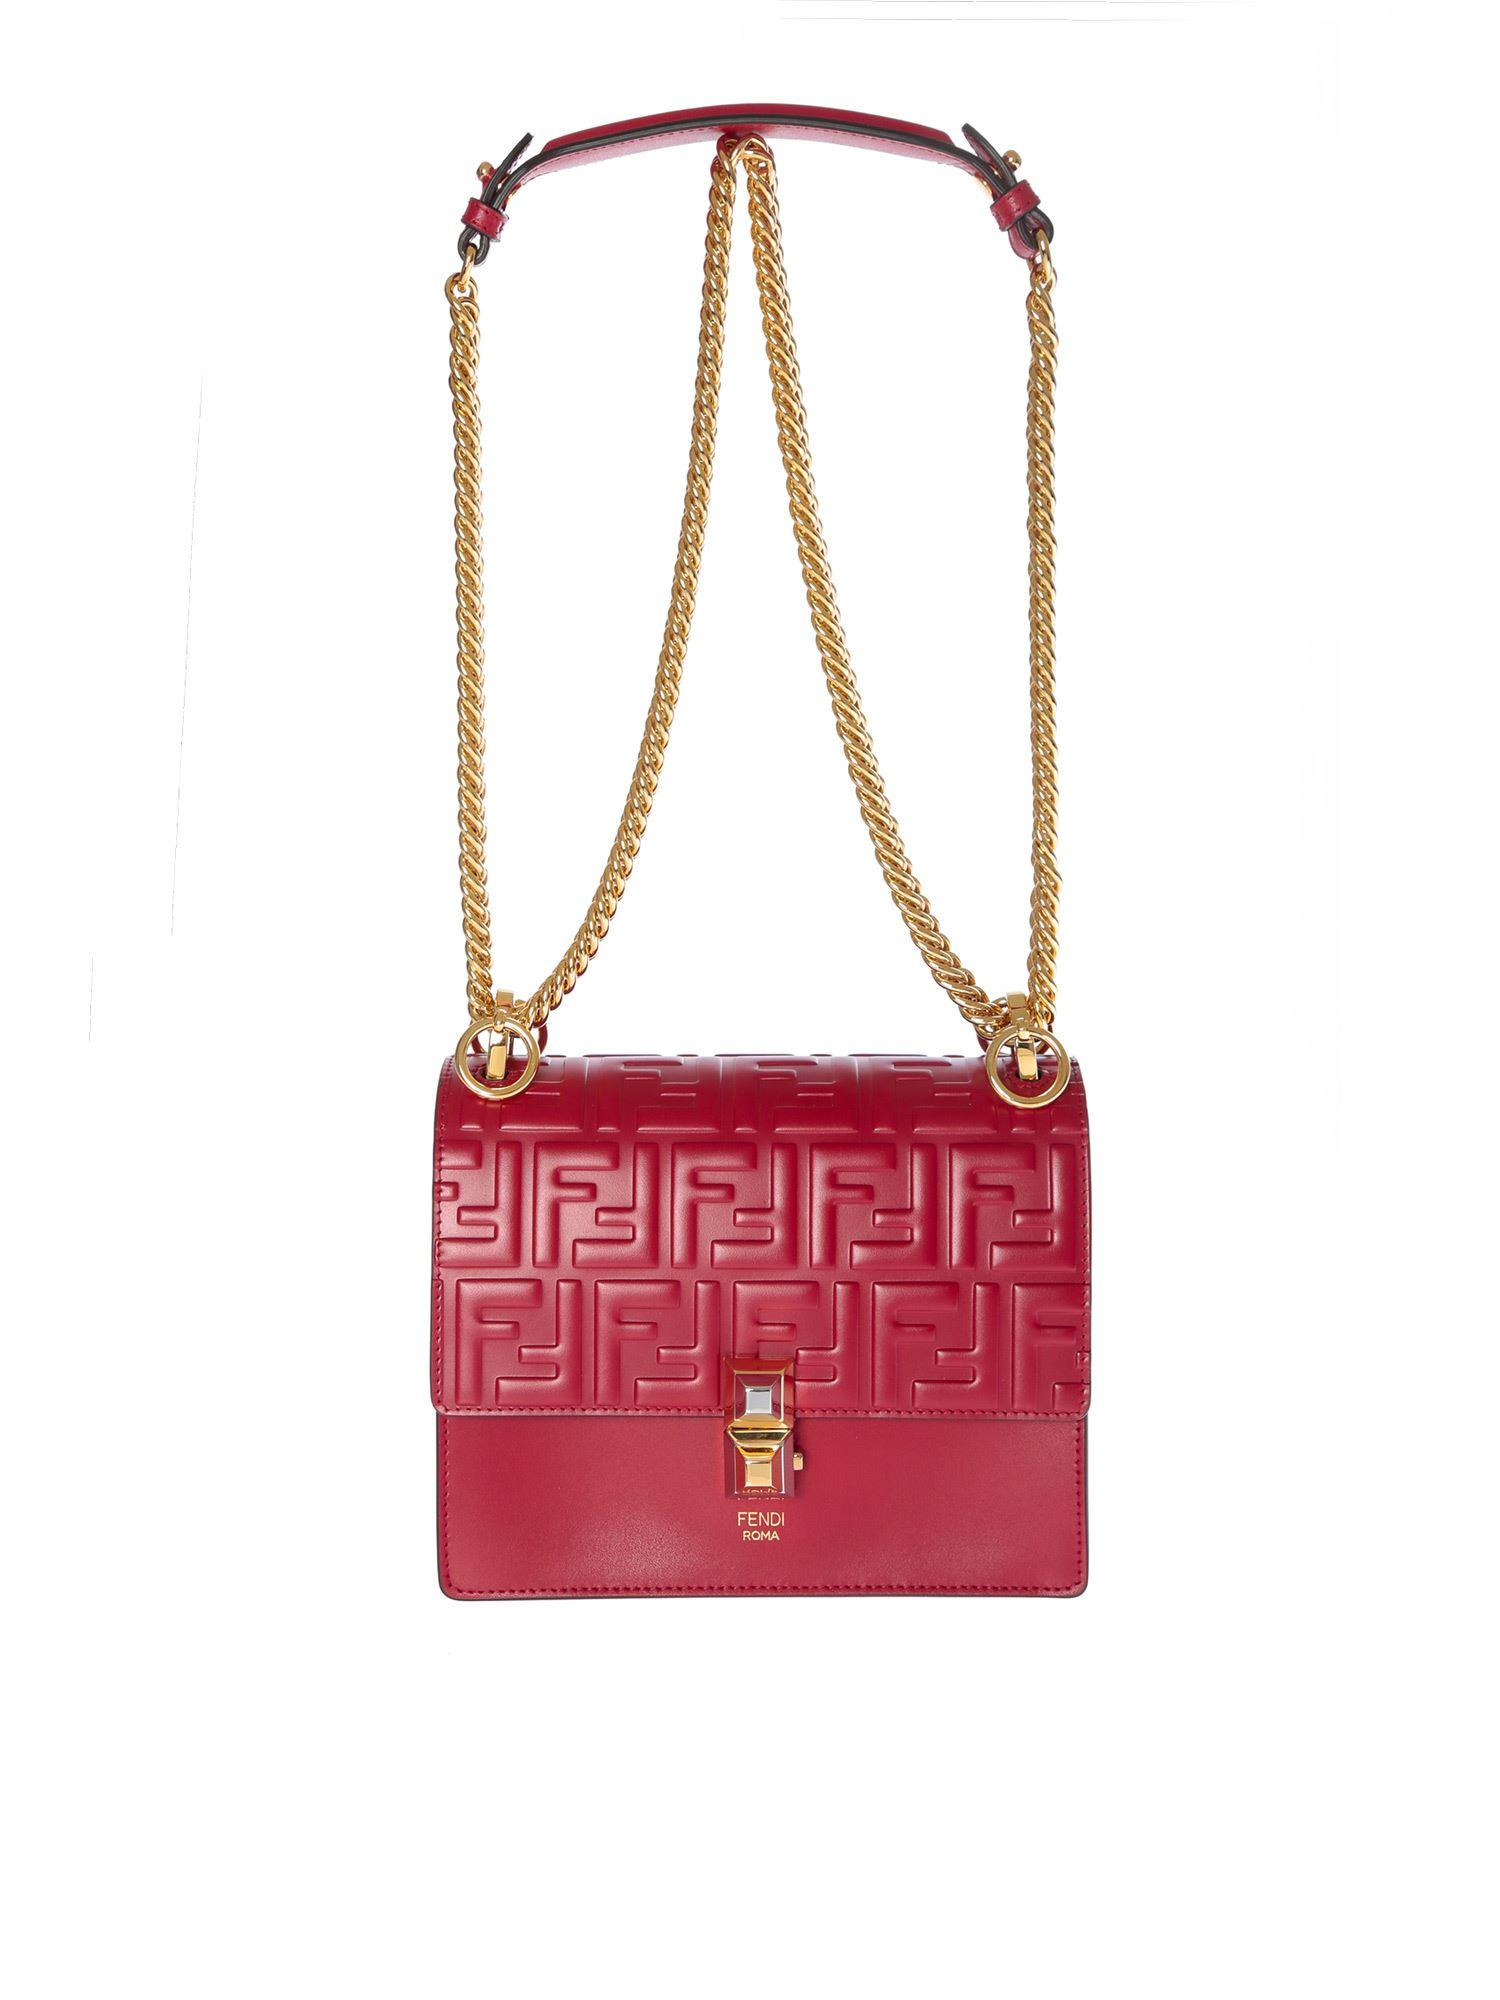 5e018c211e18 Lyst - Fendi Red Leather Kan I Bag in Red - Save 4%